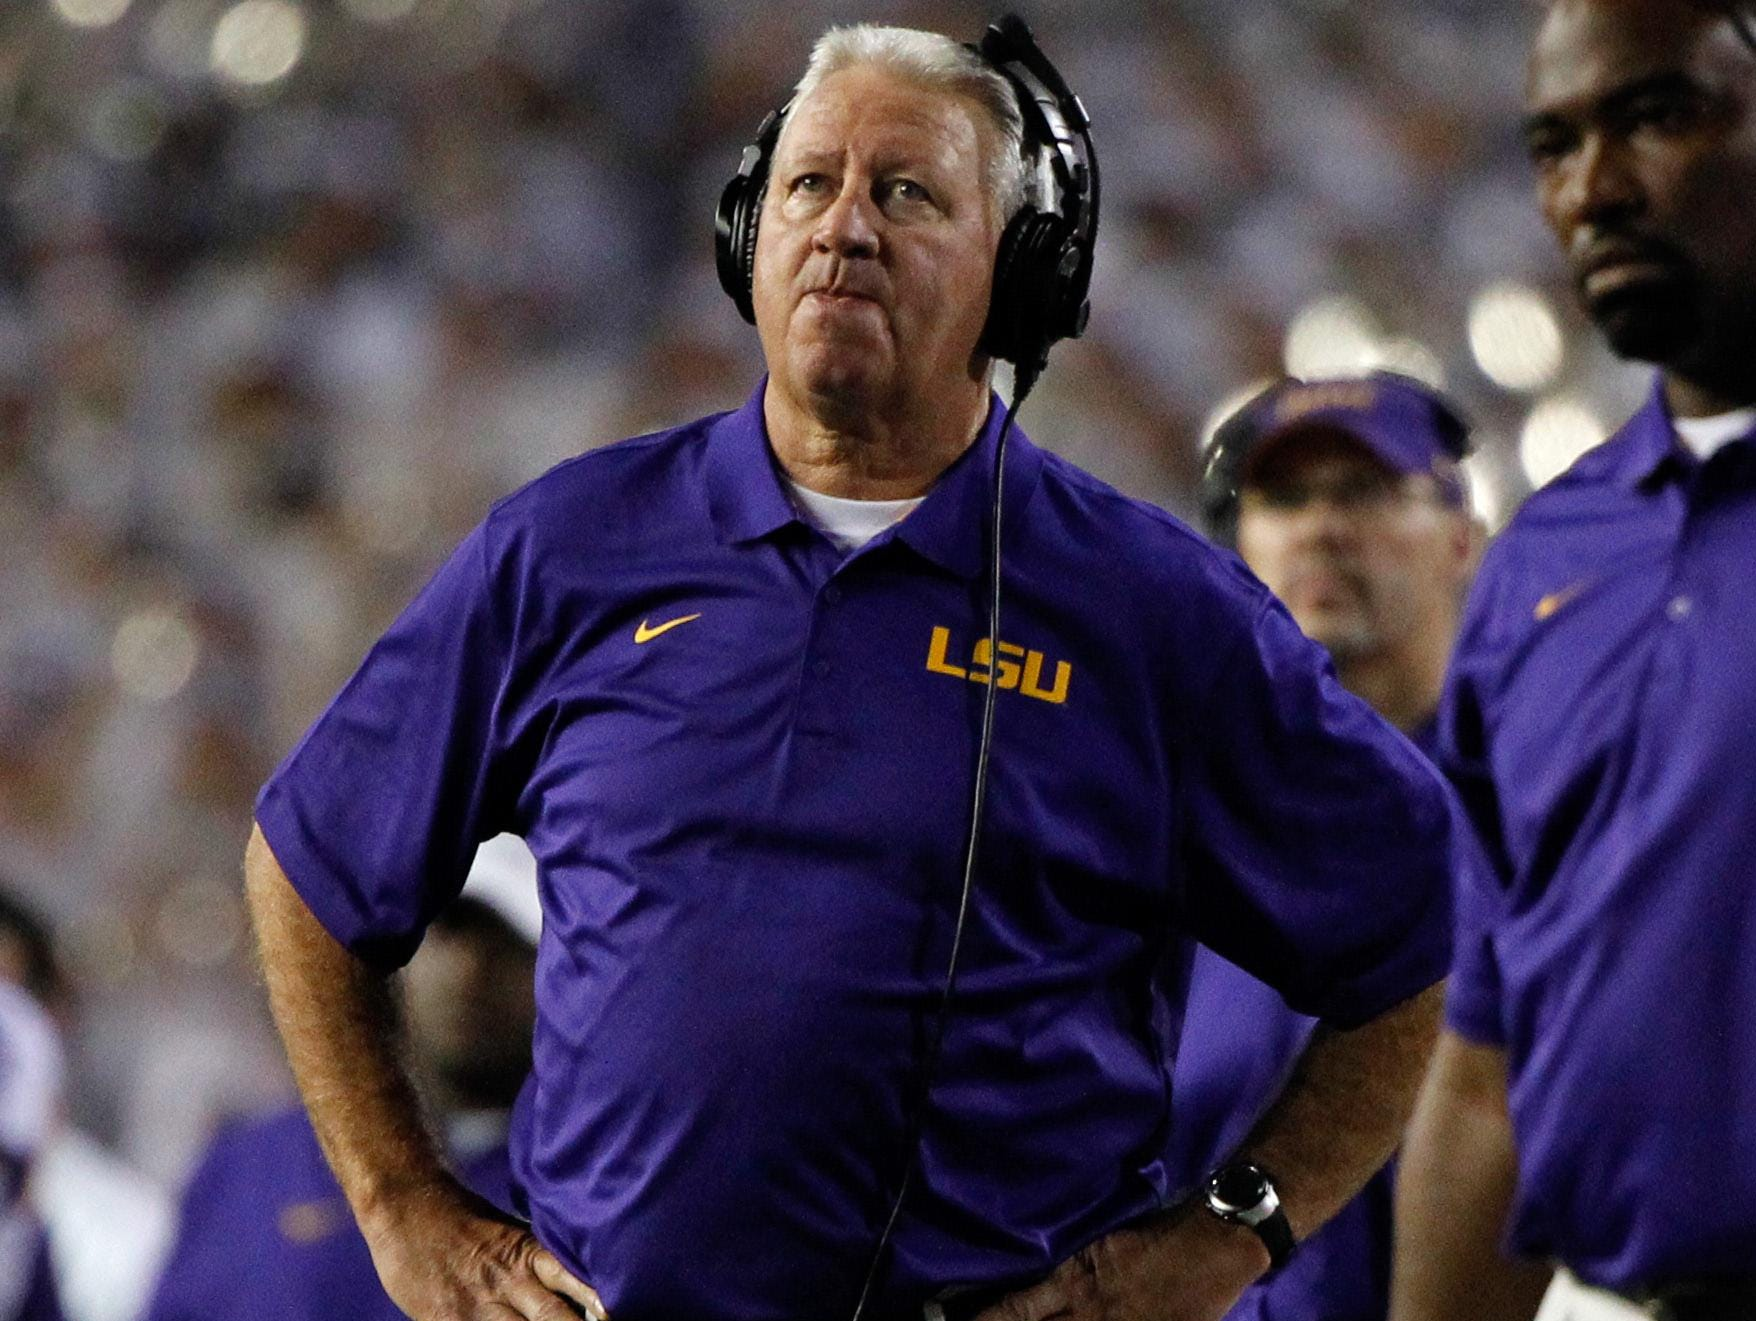 LSU offensive coordinator Cam Cameron has been treated for prostate cancer.